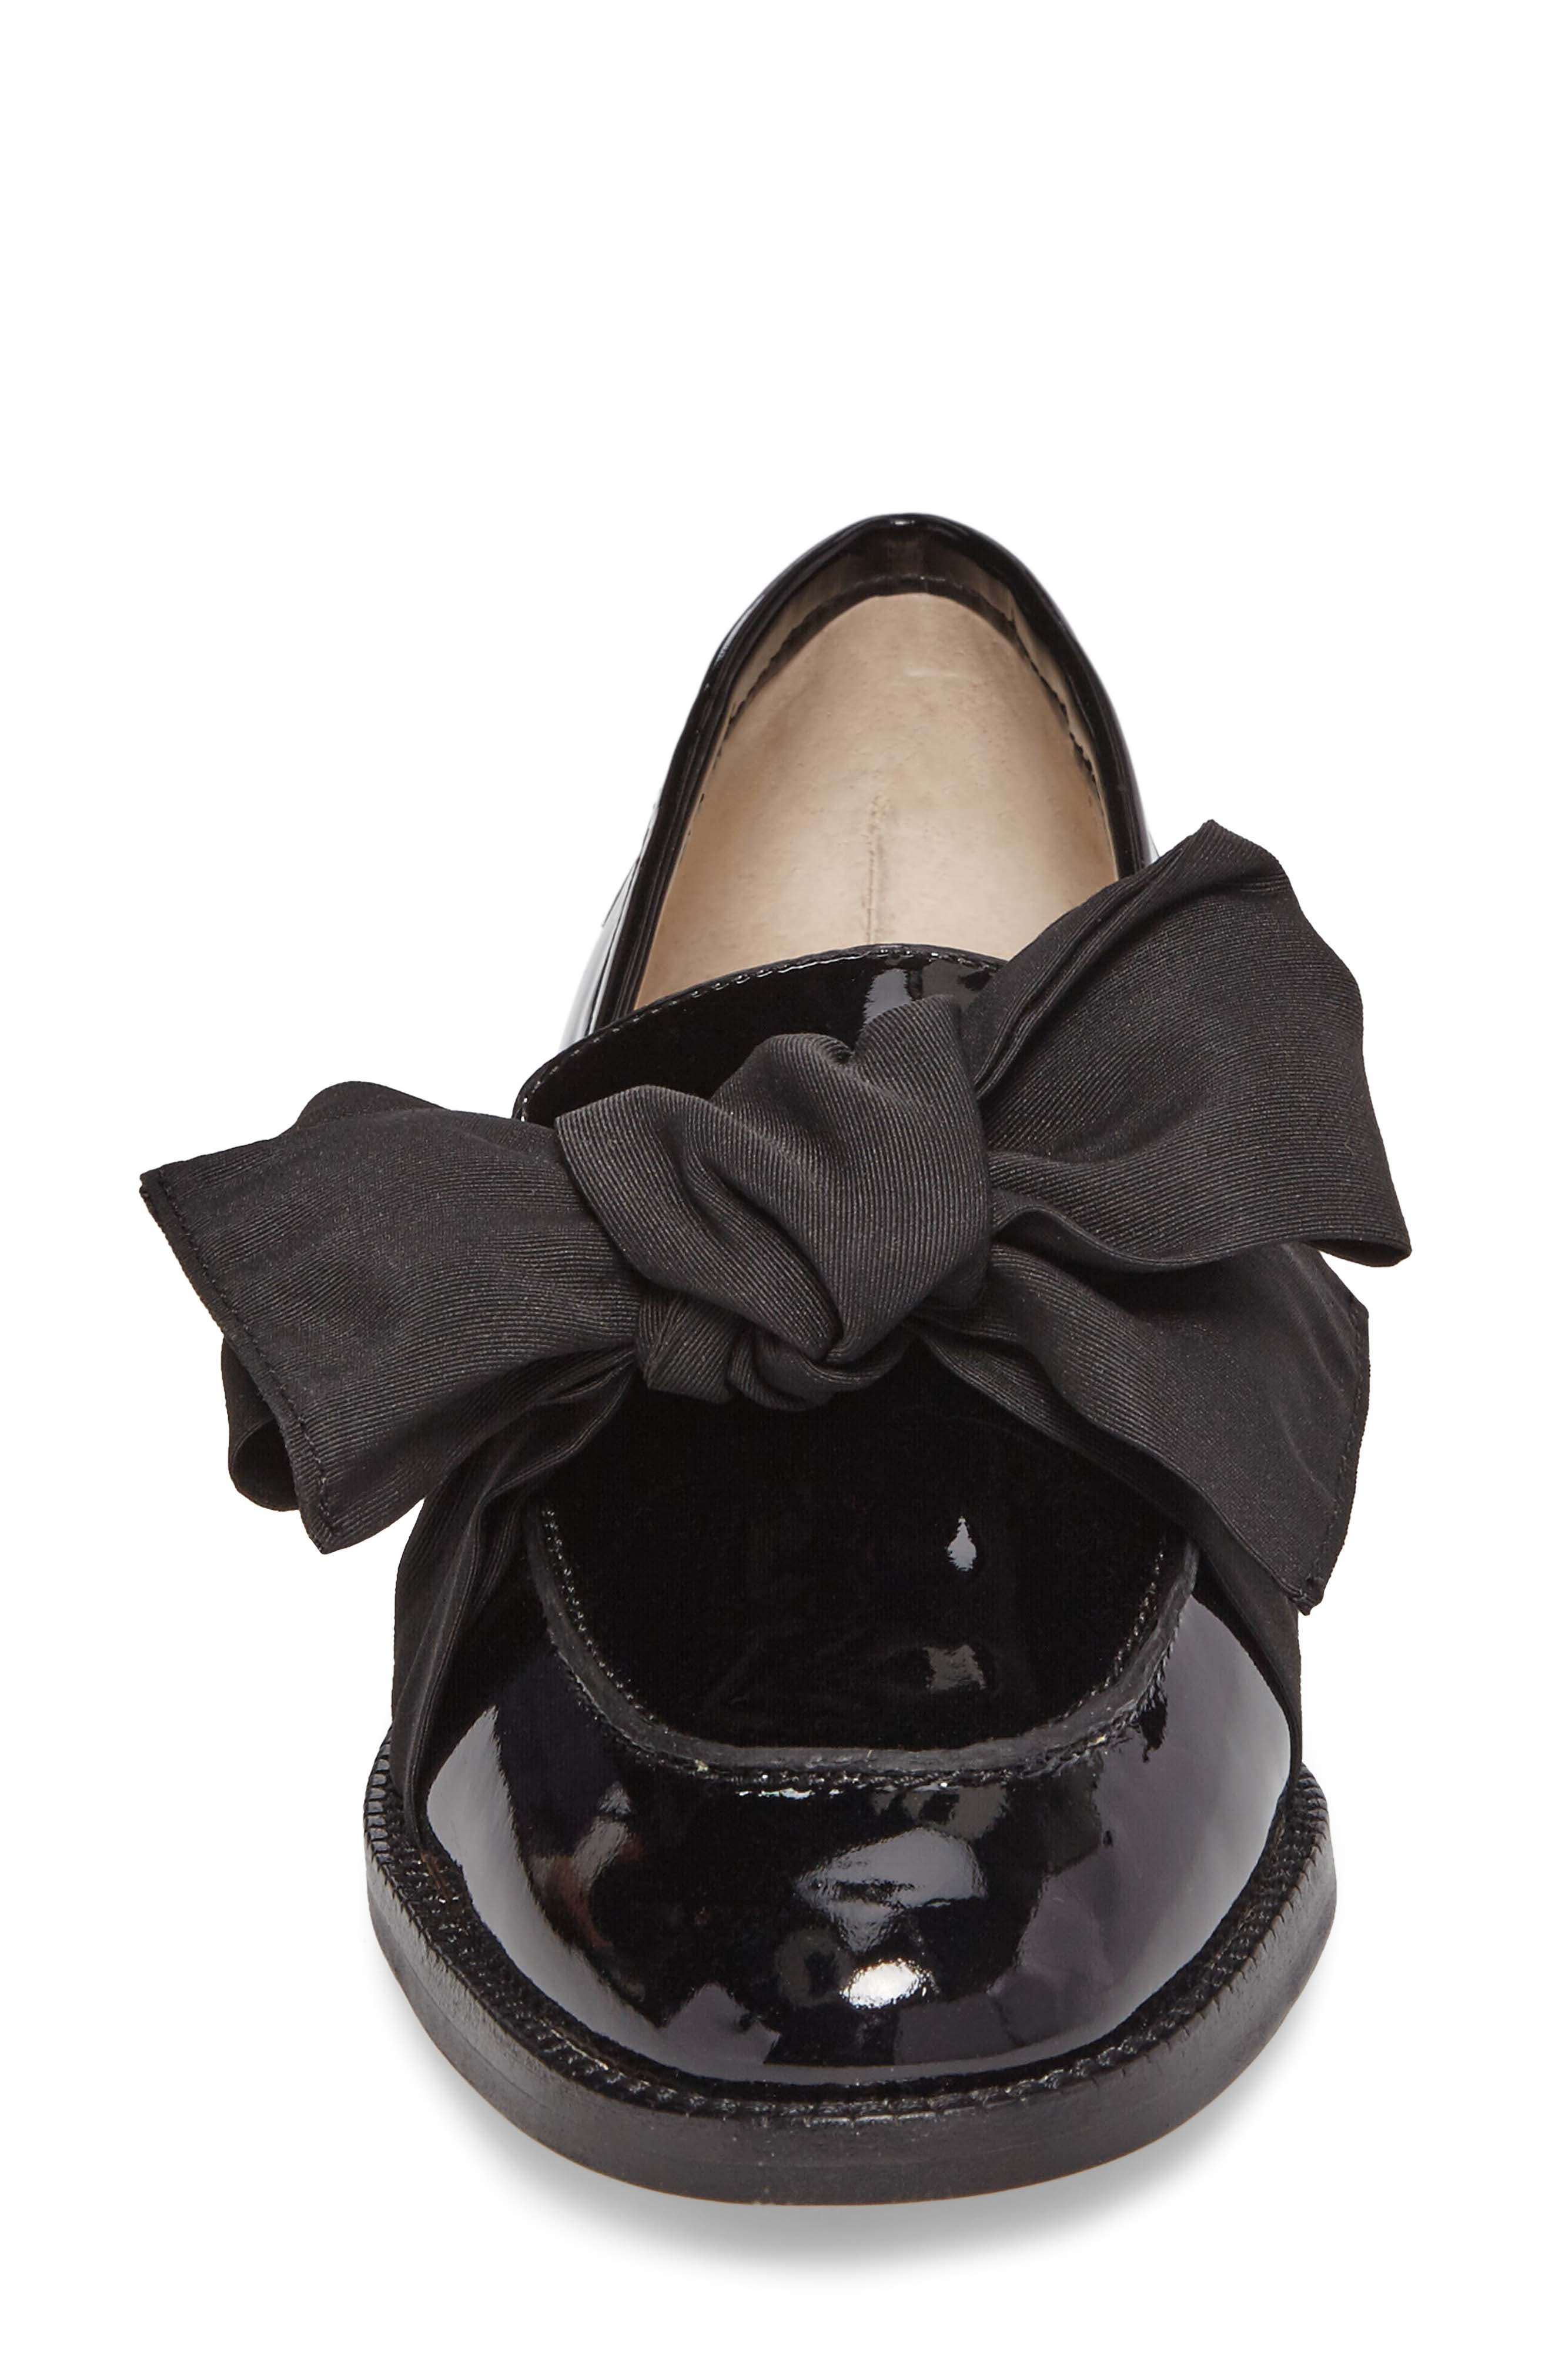 BOTKIER,                             Violet Bow Loafer,                             Alternate thumbnail 4, color,                             BLACK PATENT LEATHER